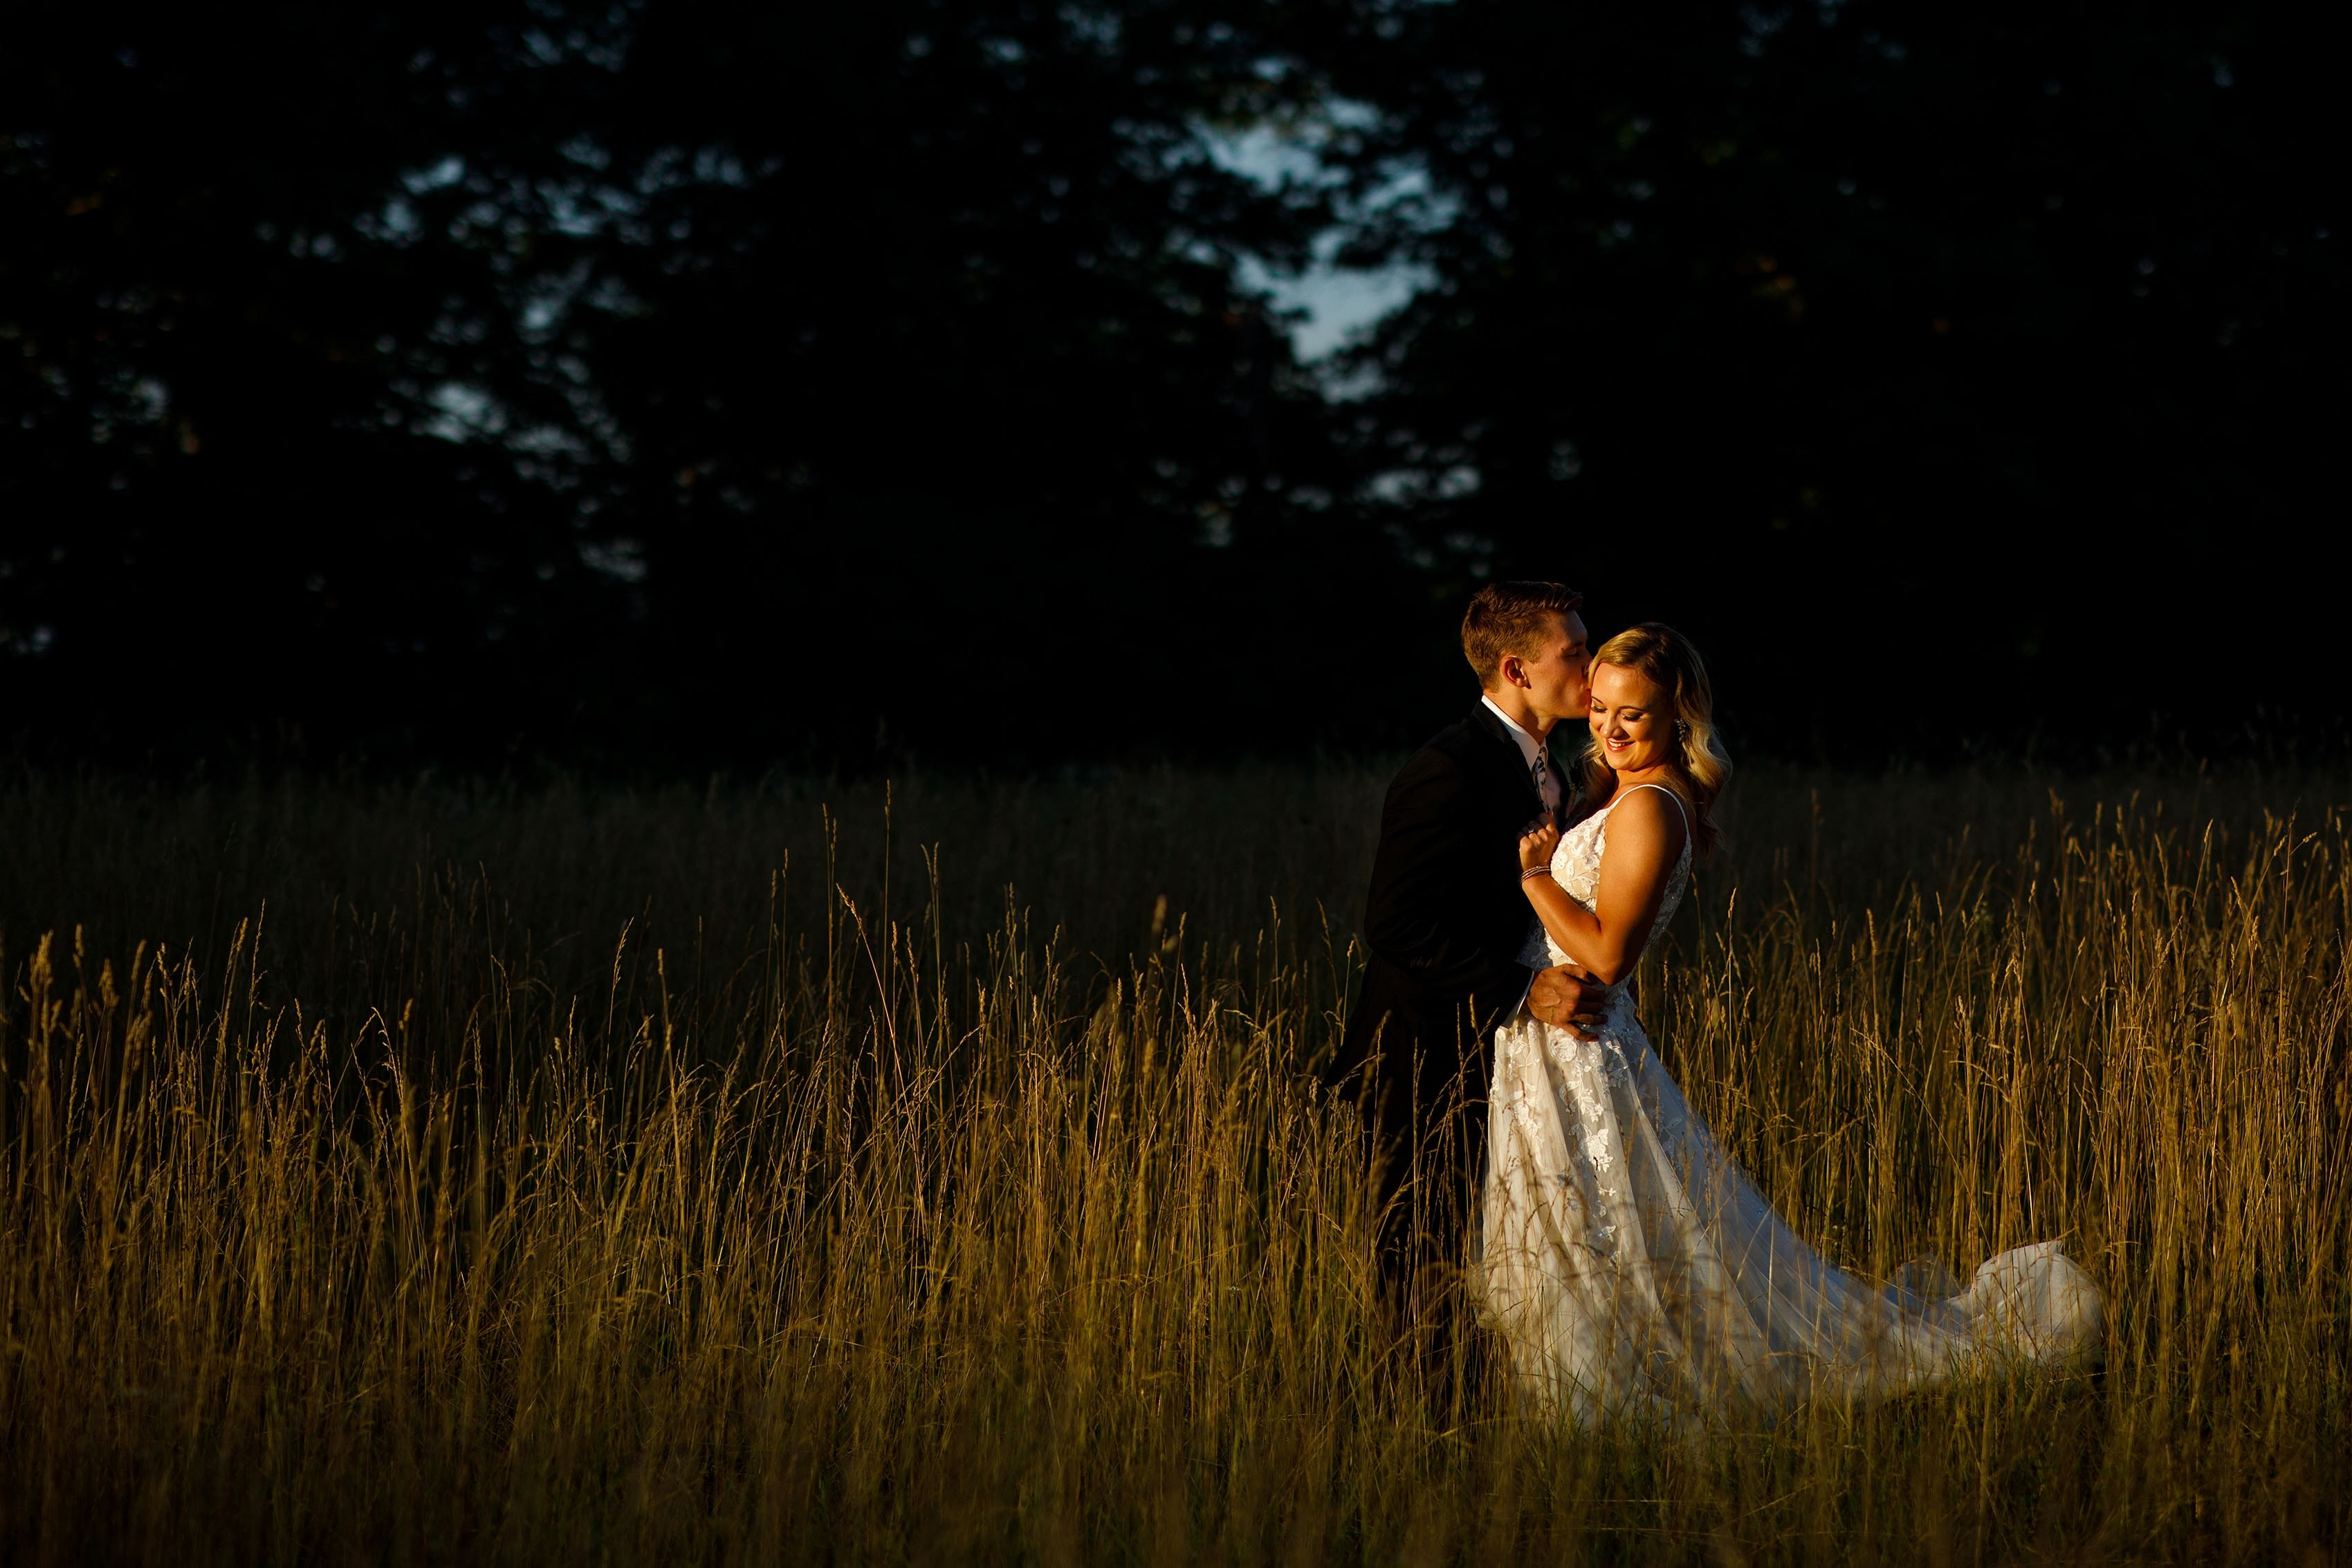 Jacob kisses Sienna in tall grass at Emerson Fields during golden hour on their wedding day